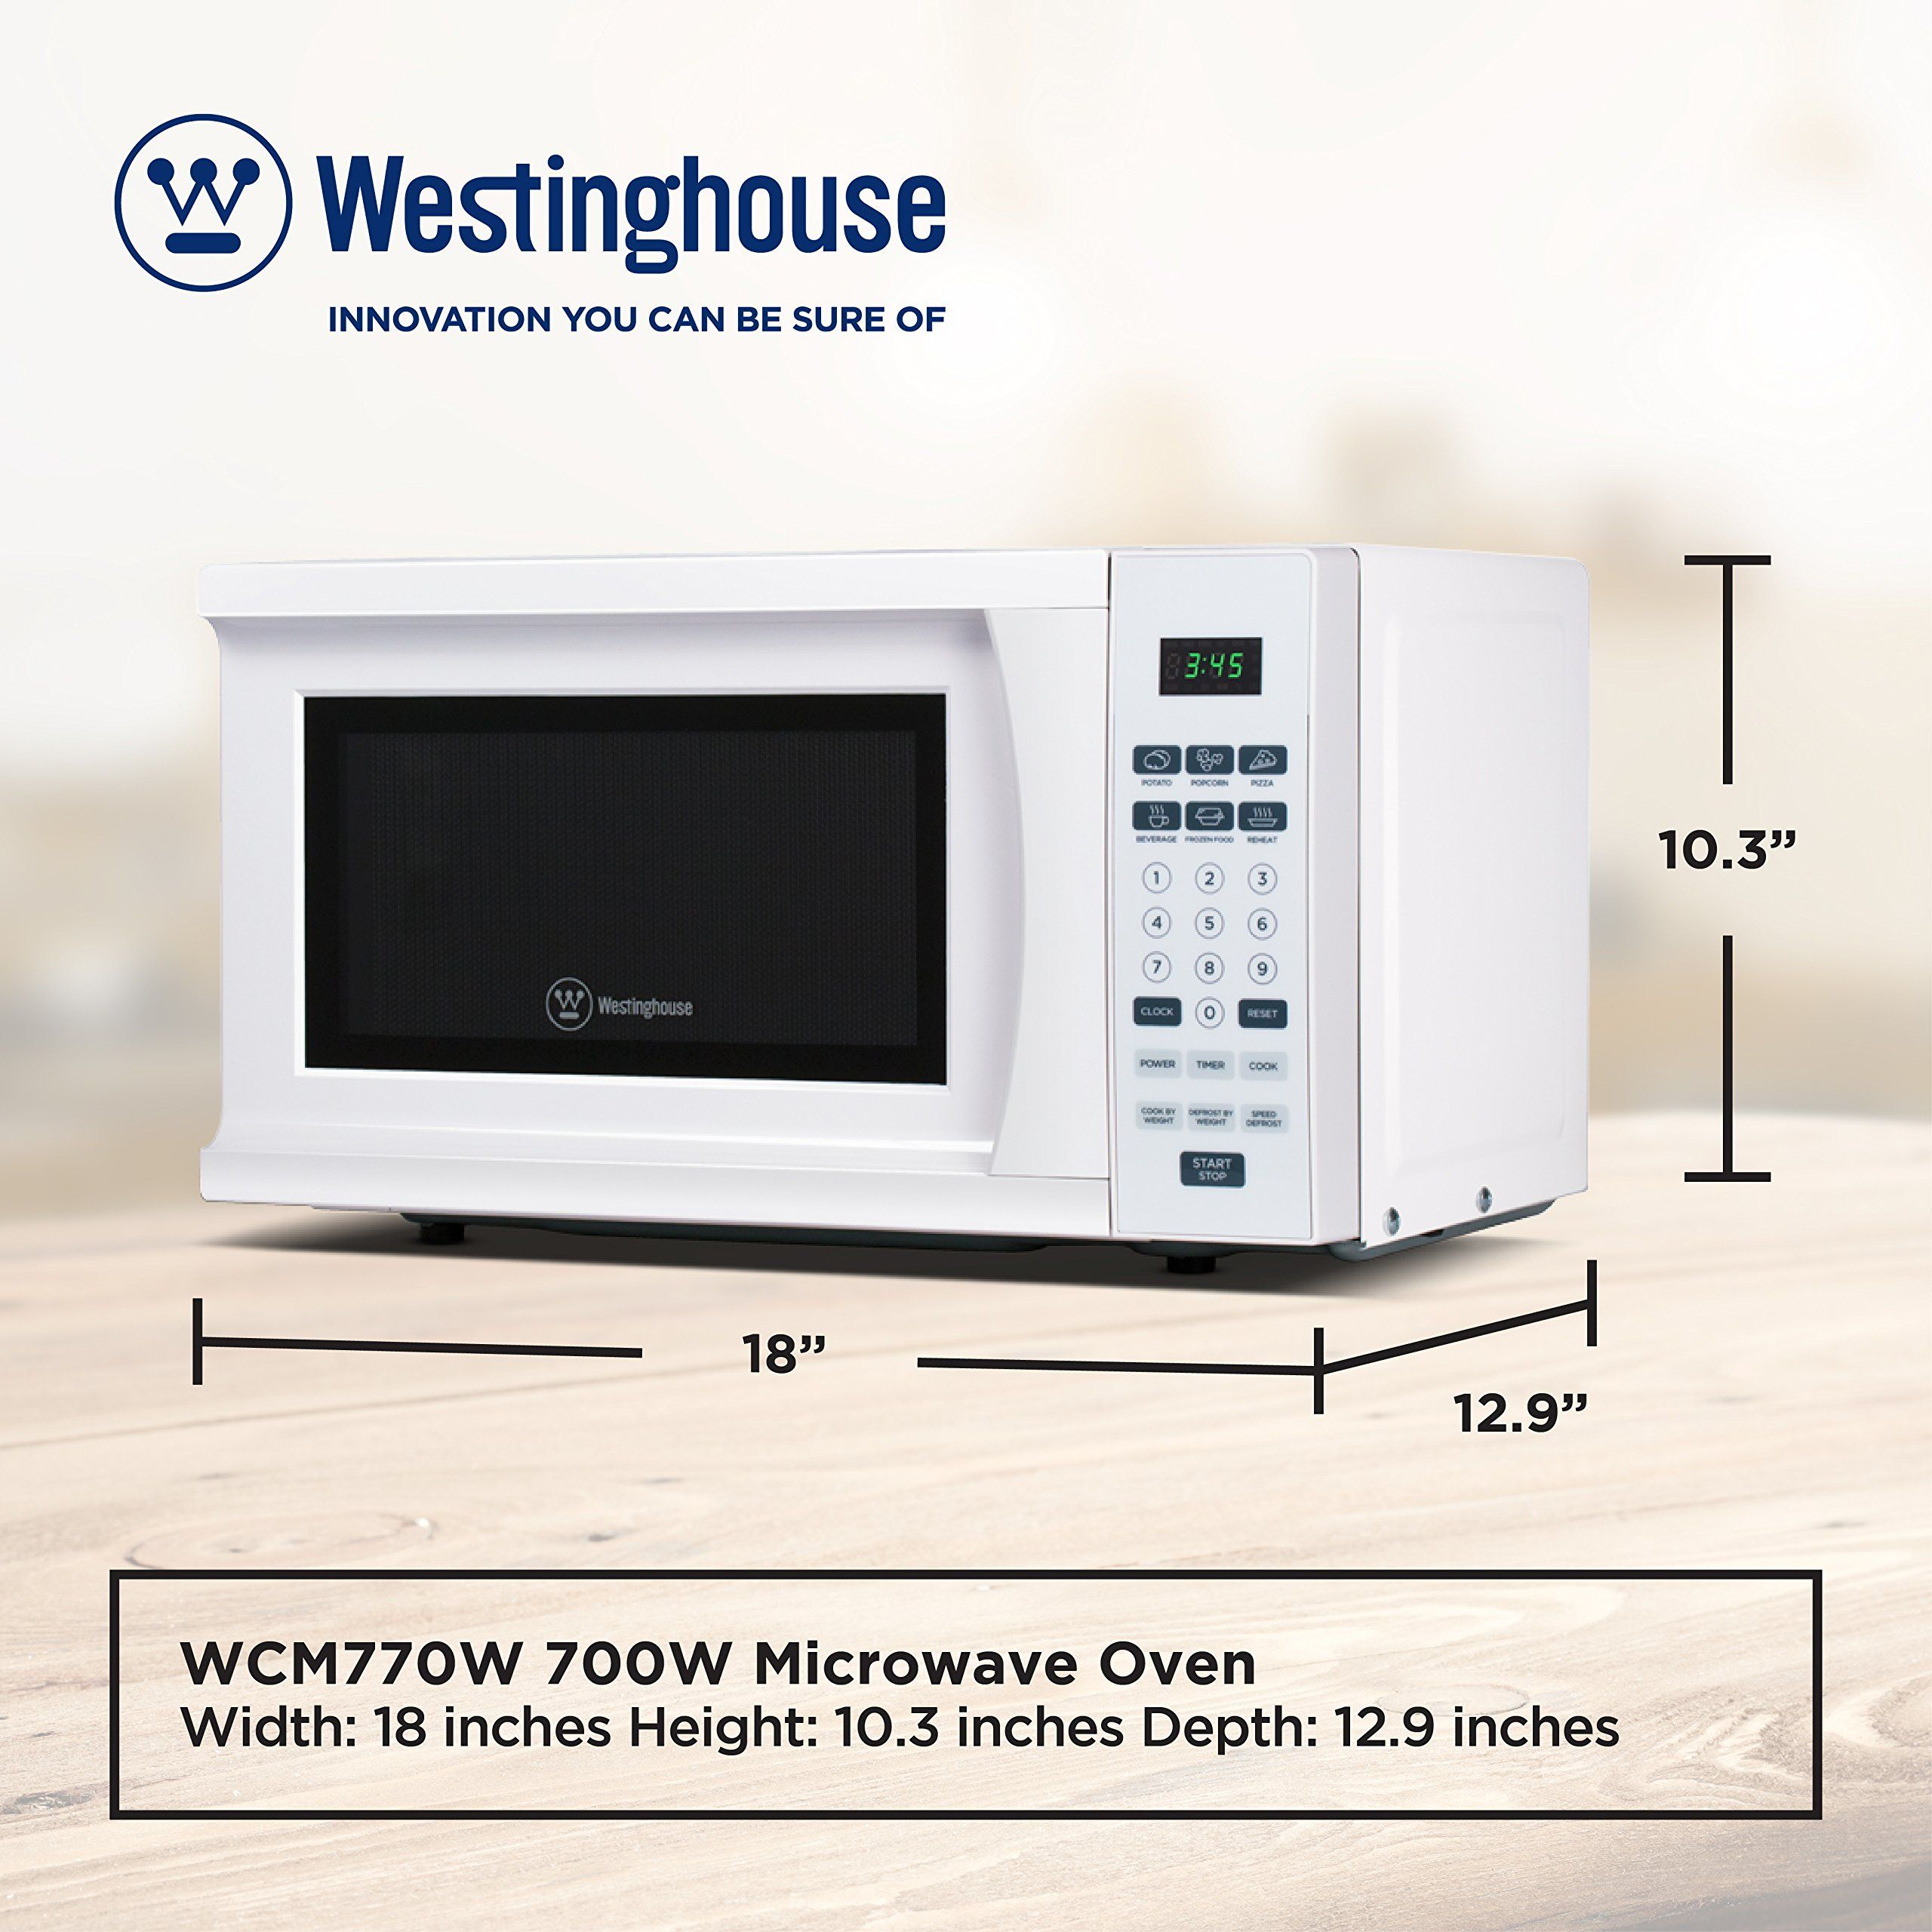 Westinghouse Wcm770w 700 Watt Counter Top Microwave Oven 0 7 Cubic Feet White Cabinet Click On The Image For Add Microwave Oven Top Microwaves Westinghouse